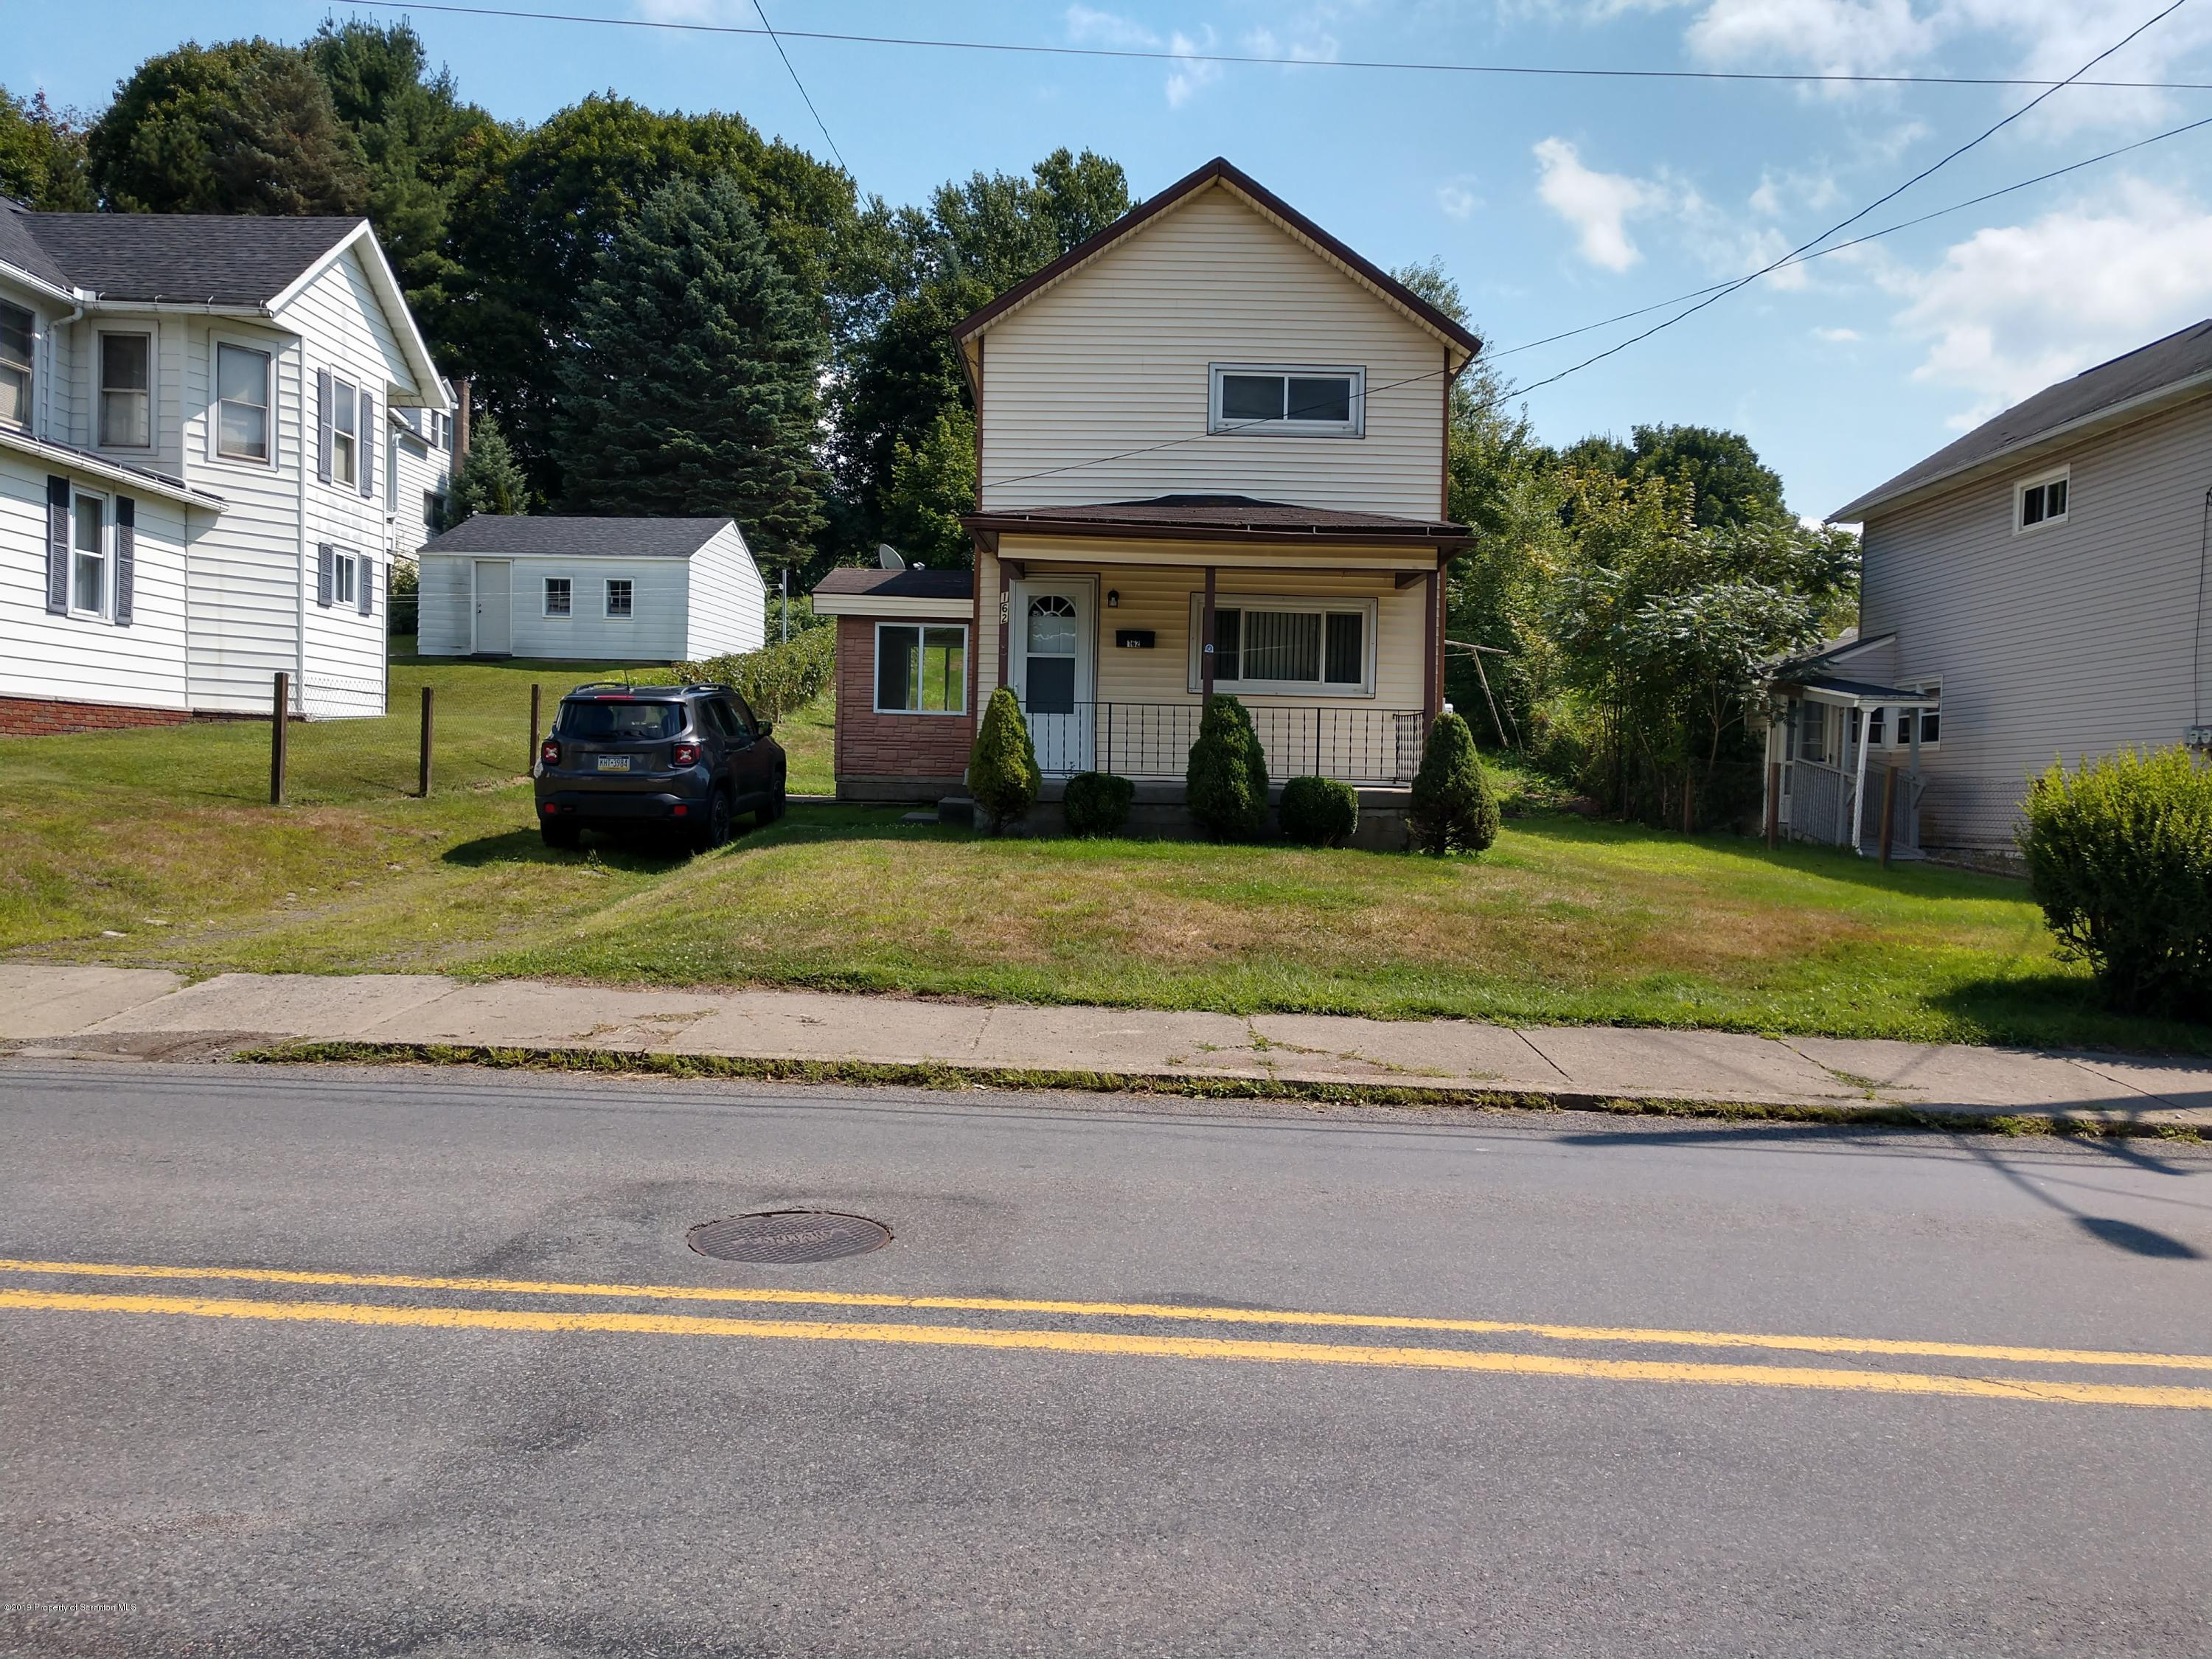 162 Pike St, Carbondale, Pennsylvania 18407, 2 Bedrooms Bedrooms, 4 Rooms Rooms,2 BathroomsBathrooms,Single Family,For Sale,Pike,19-4076